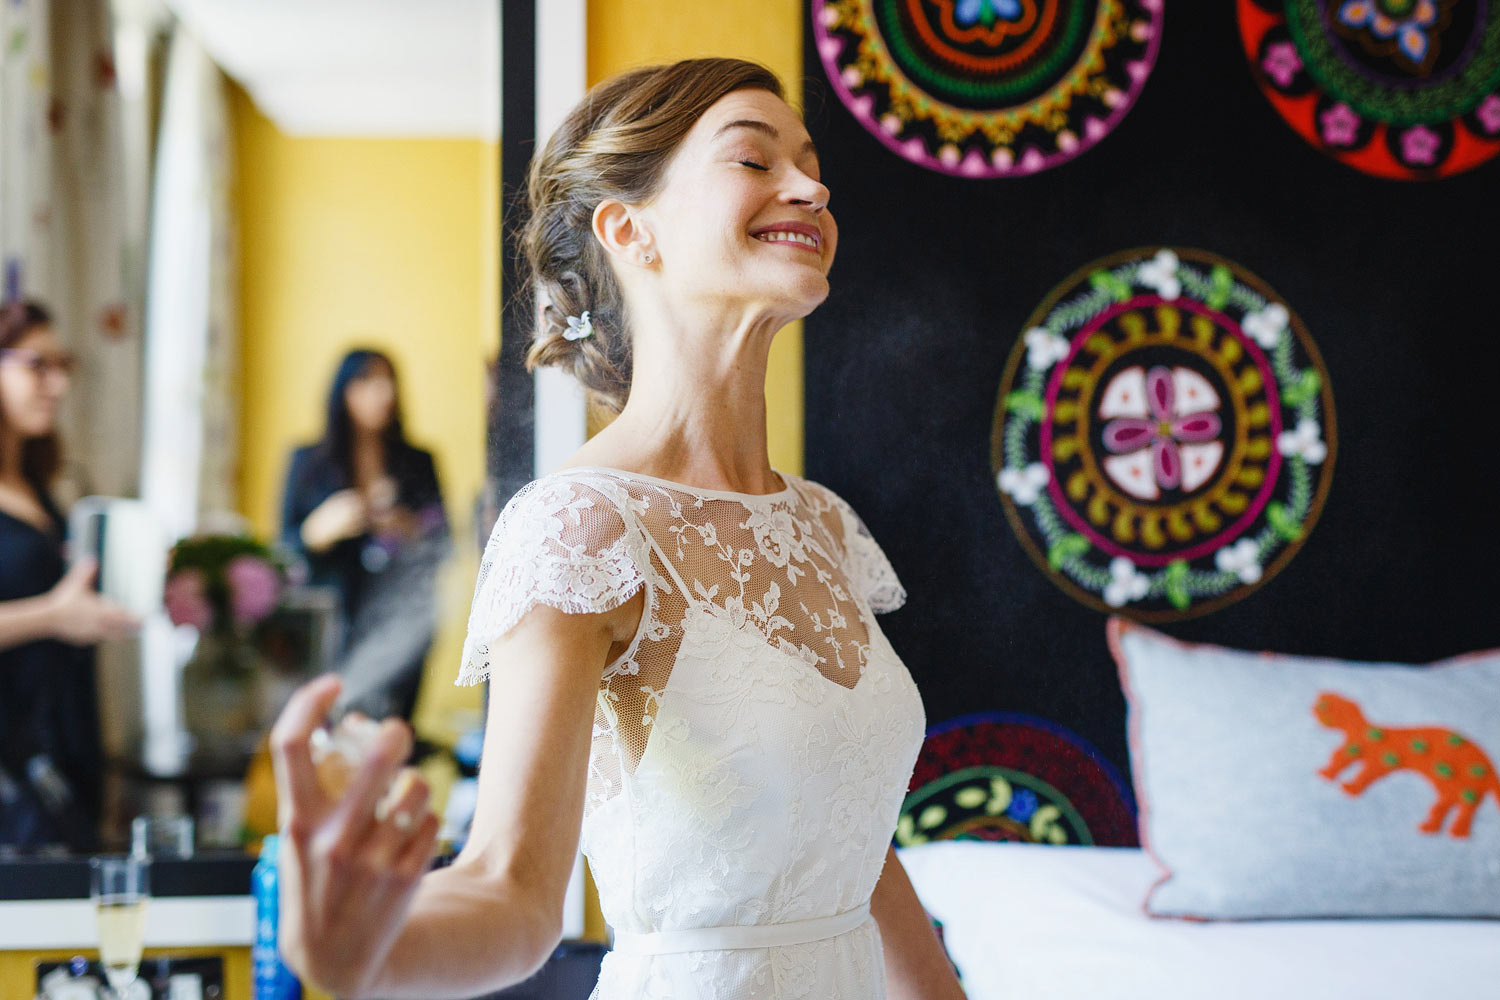 A bride puts perfume on at Dorset Square Hotel - London wedding photographer